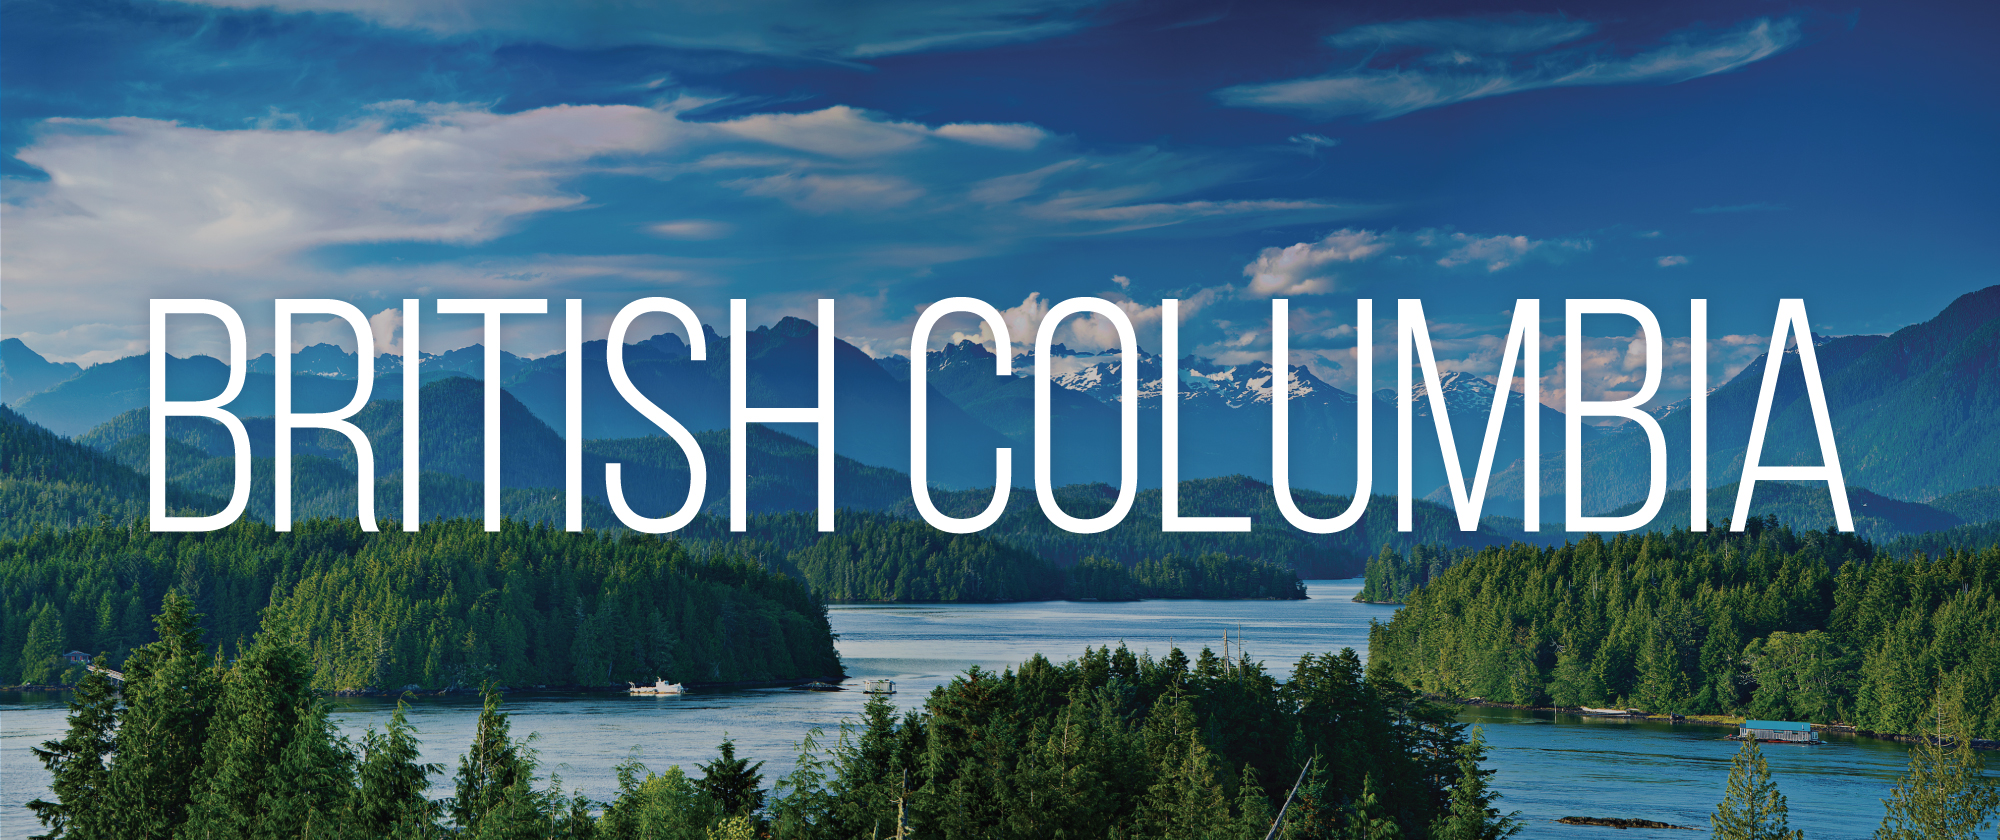 British-Columbia-Header.jpg